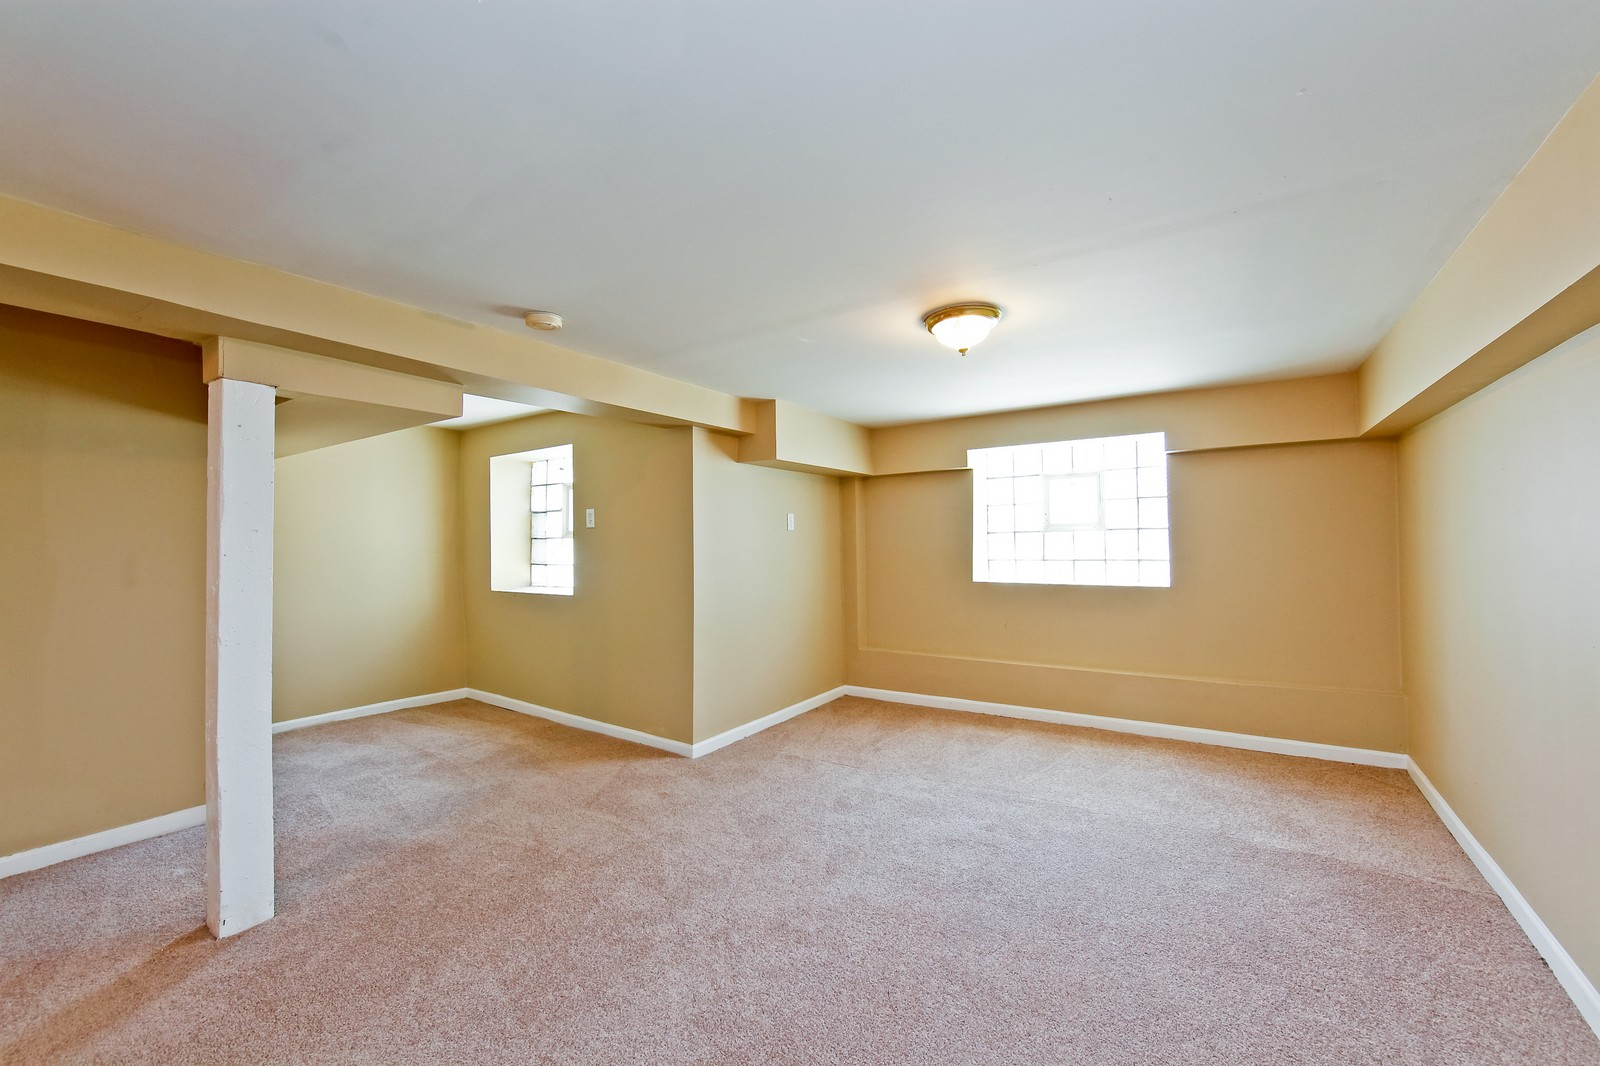 Real Estate Photography - 3332 W Polk St, Chicago, IL, 60624 - Lower Level